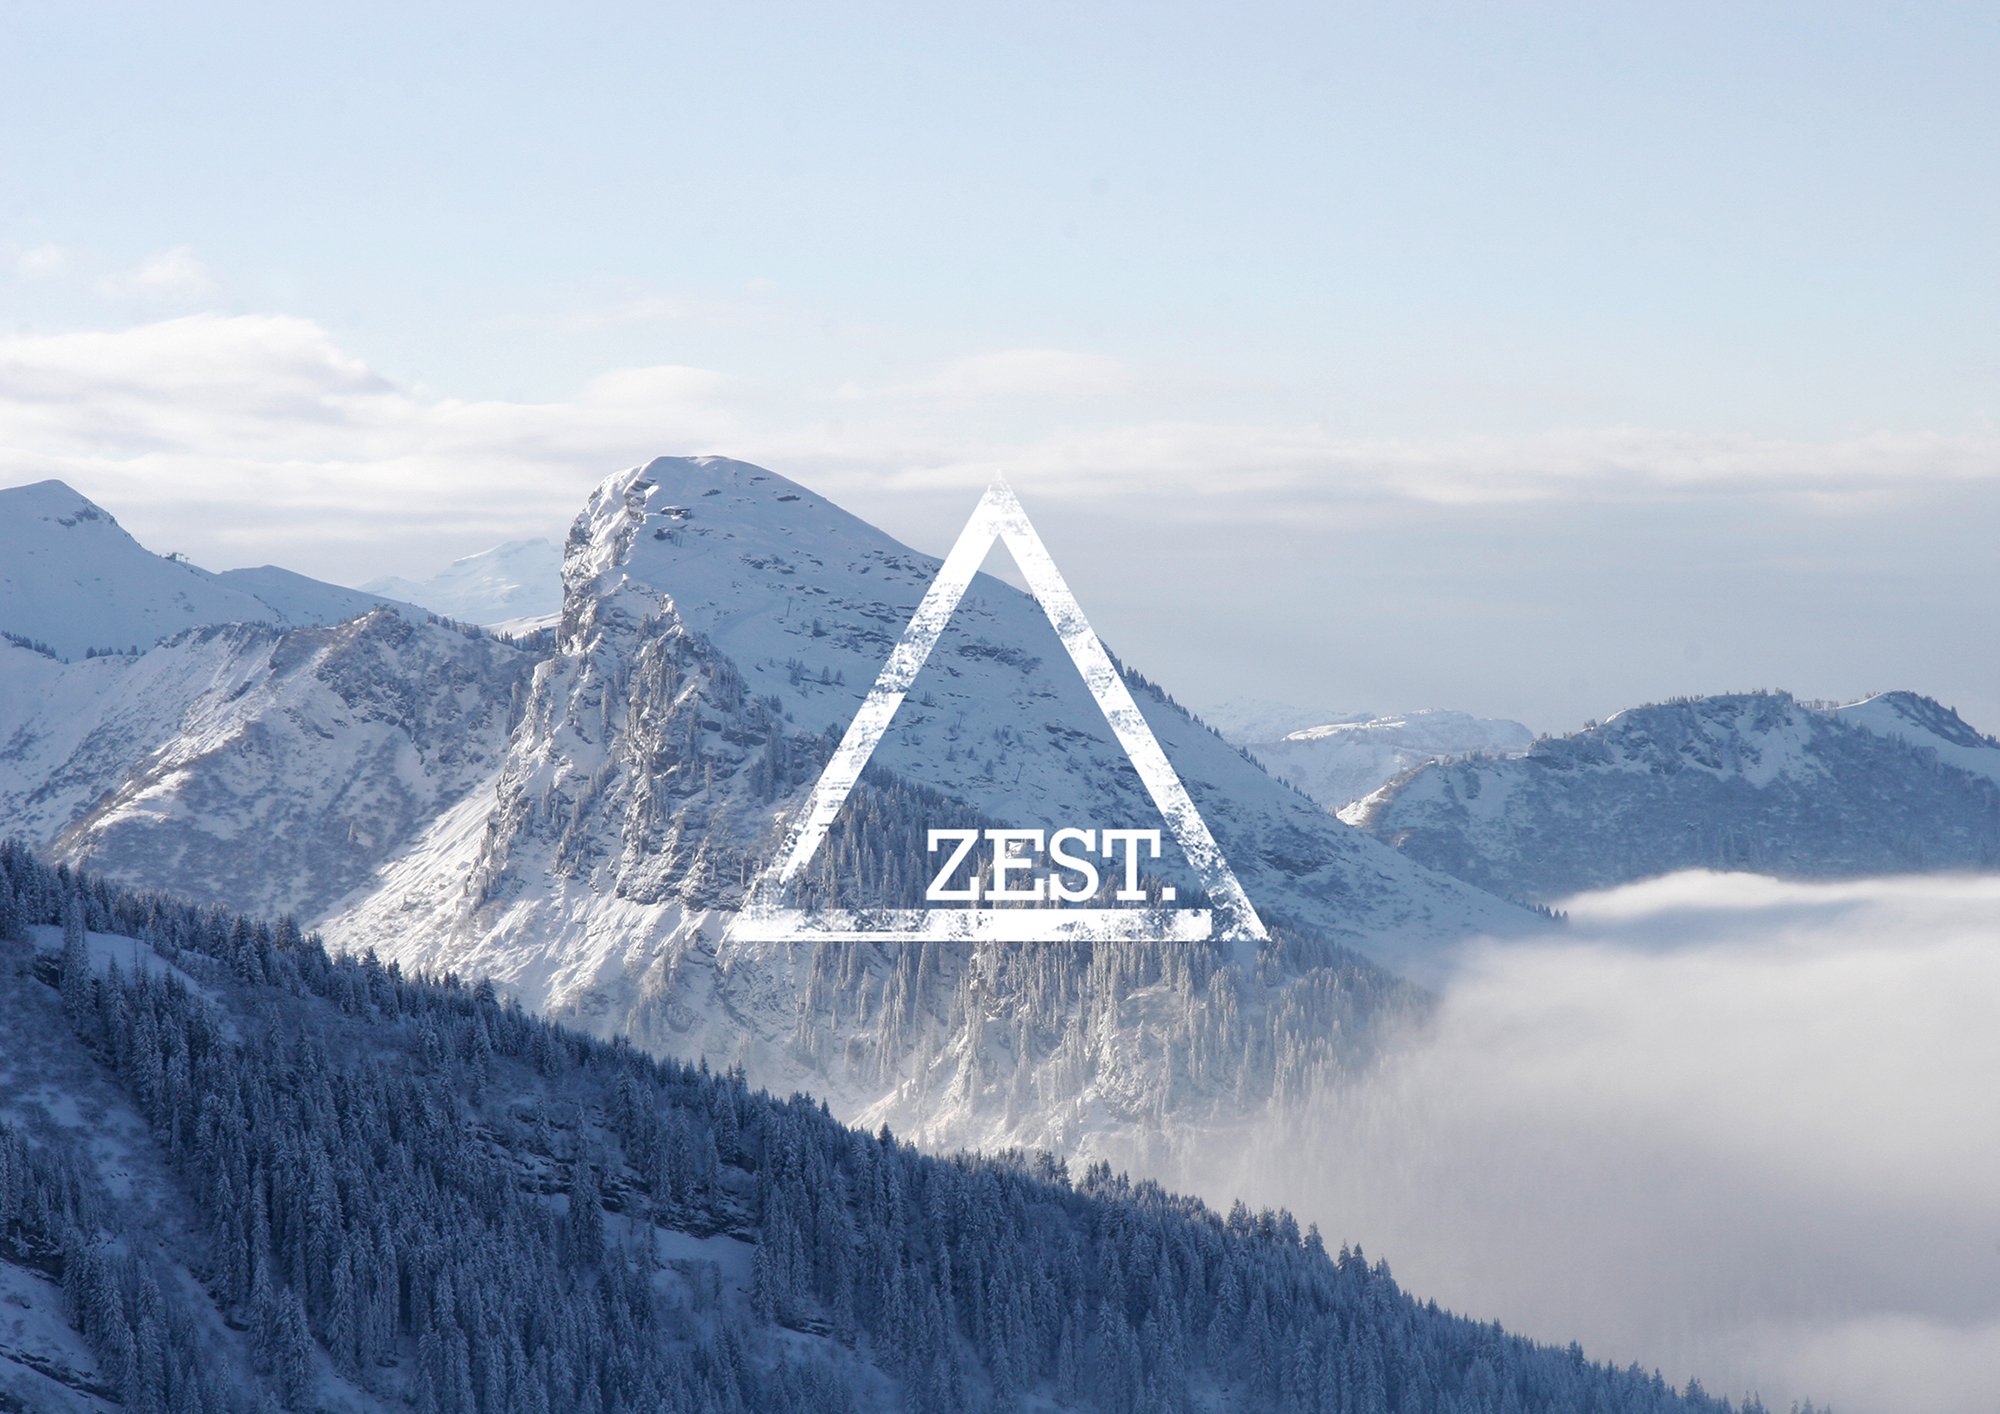 Zest. Fit Life. A new kind of snowboard holiday